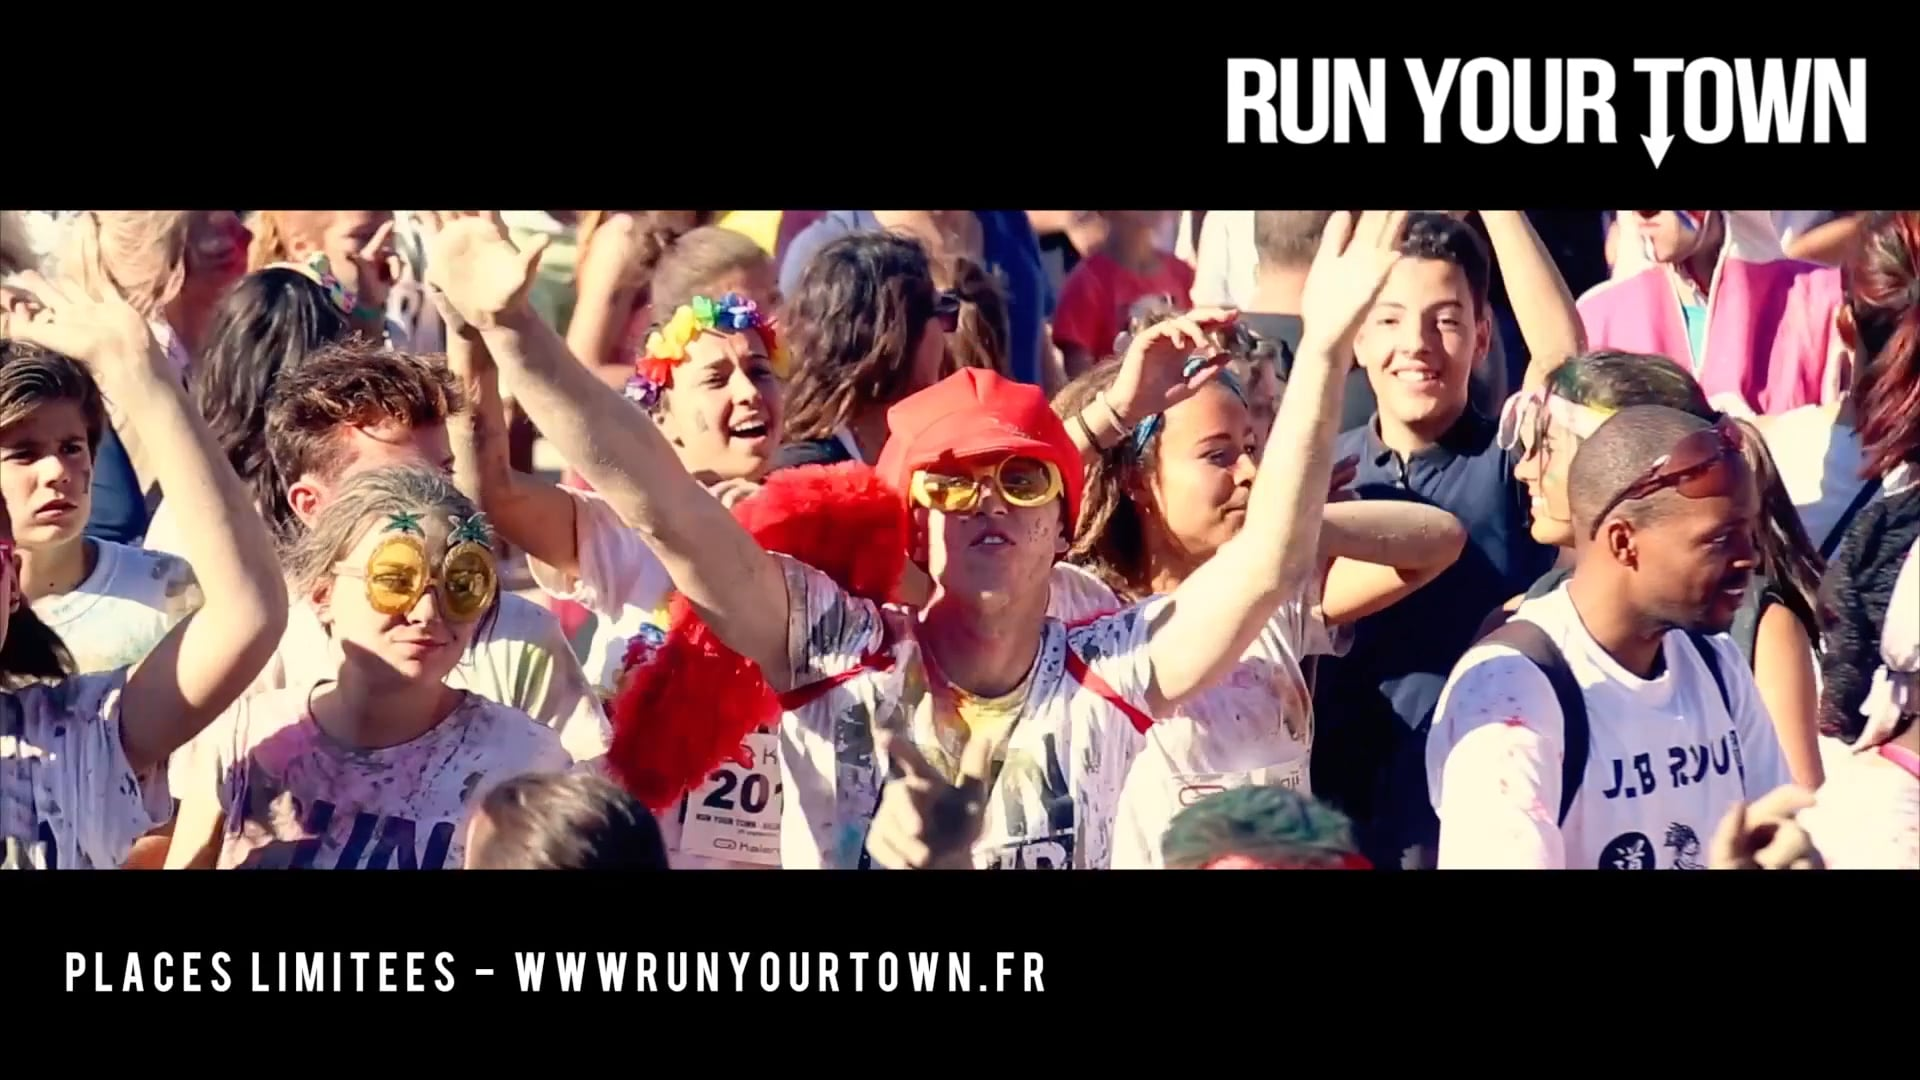 RUN YOUR TOWN